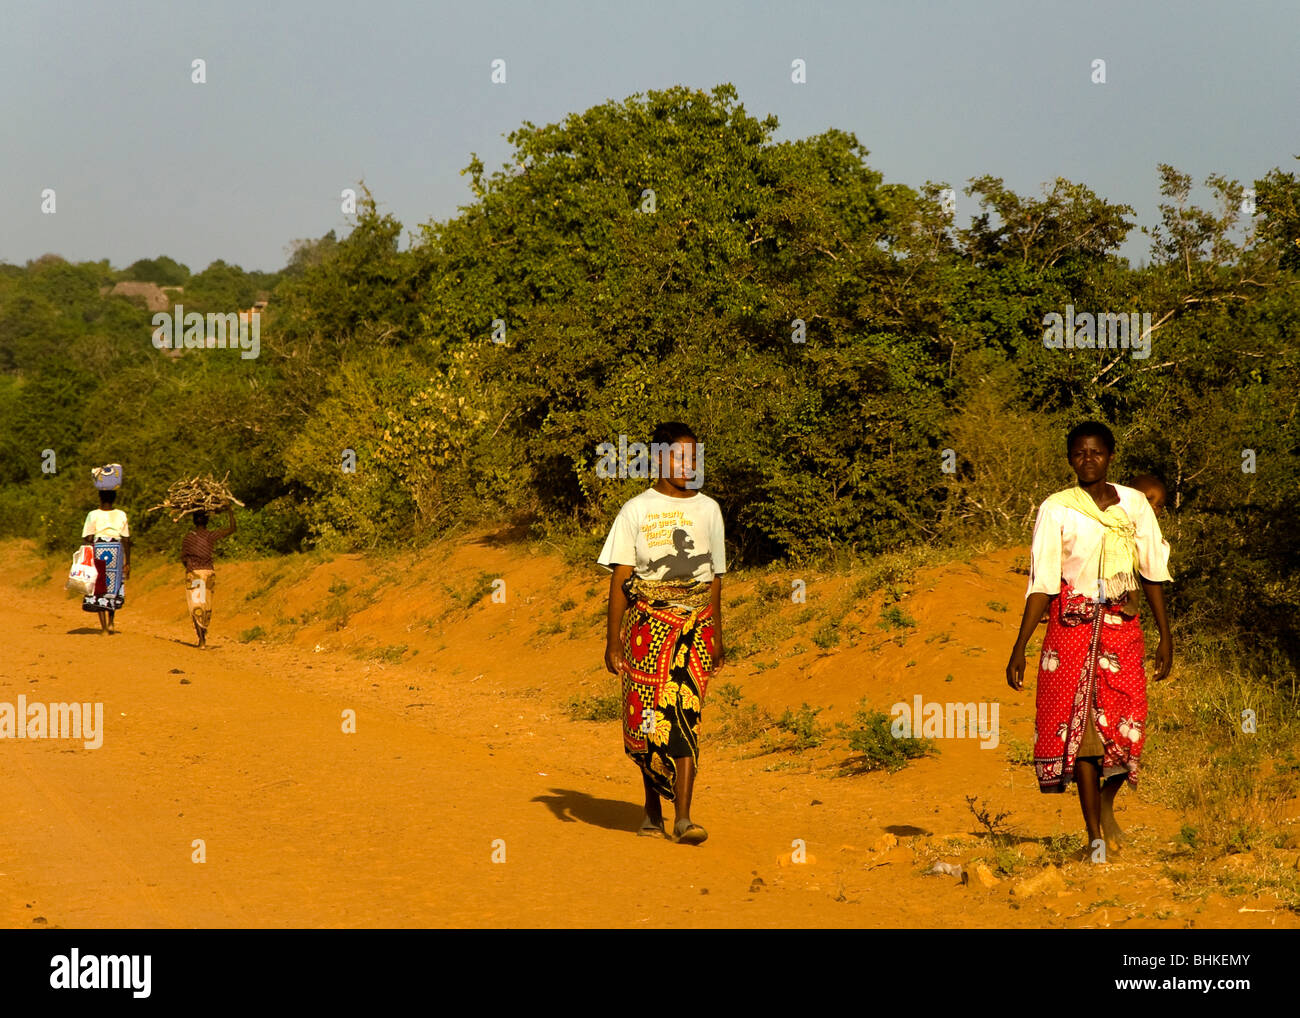 People walking home, Malindi, Kenya, Africa - Stock Image